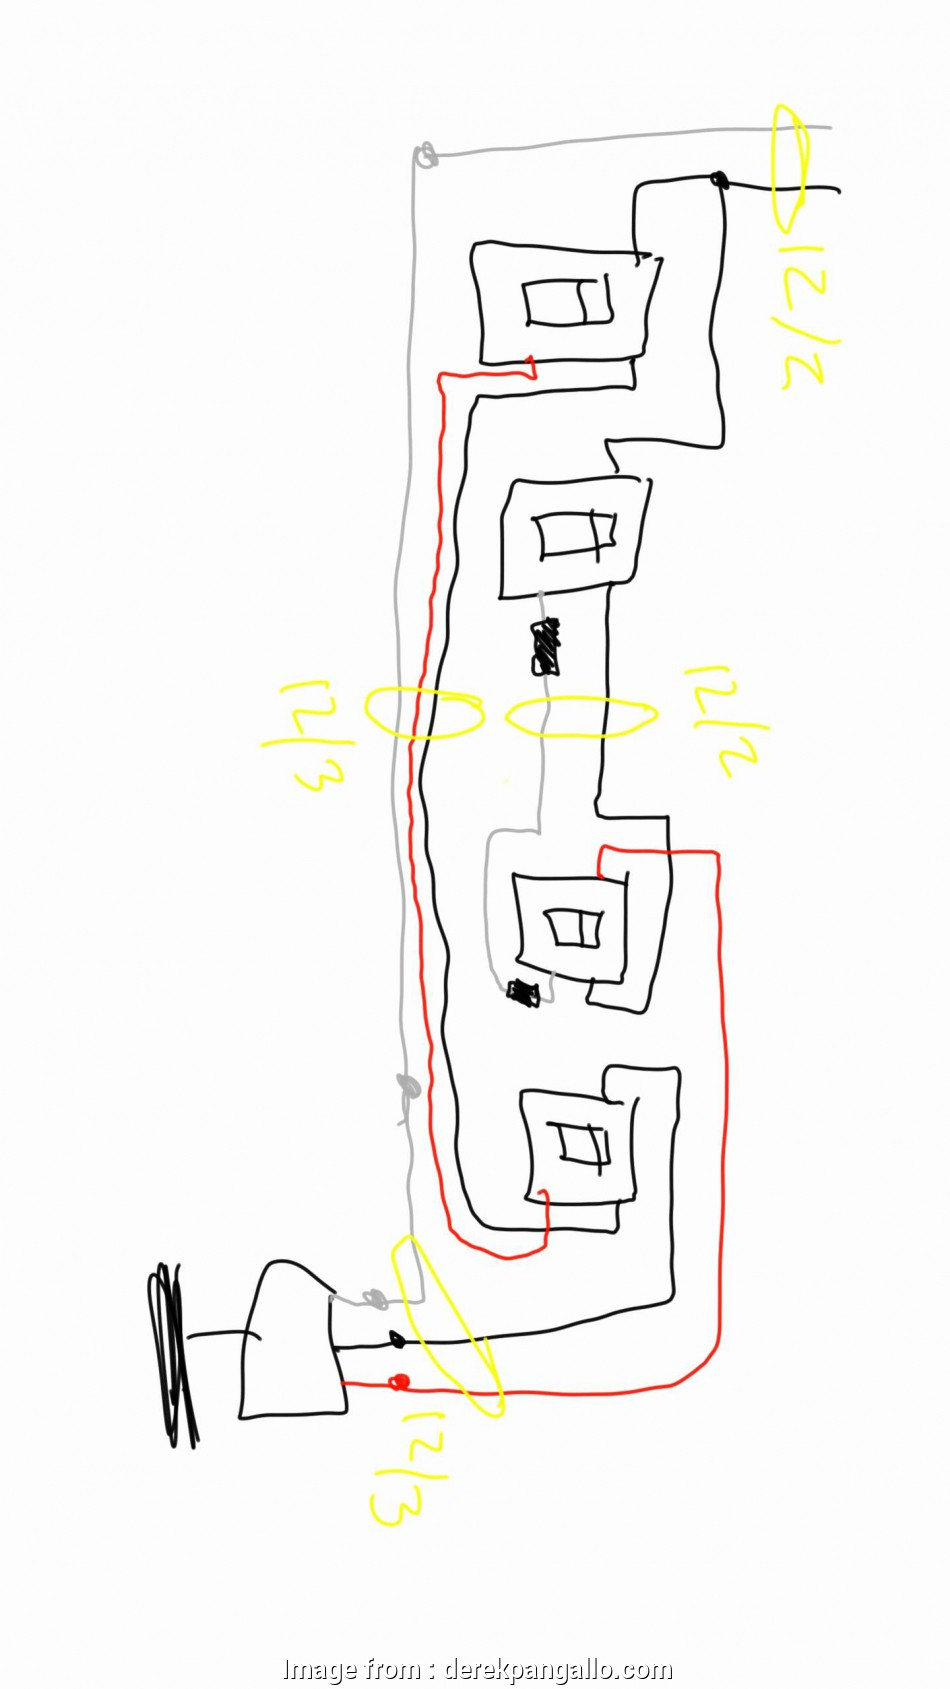 Ceiling  Reverse Switch Wiring Diagram Fantastic Hunter